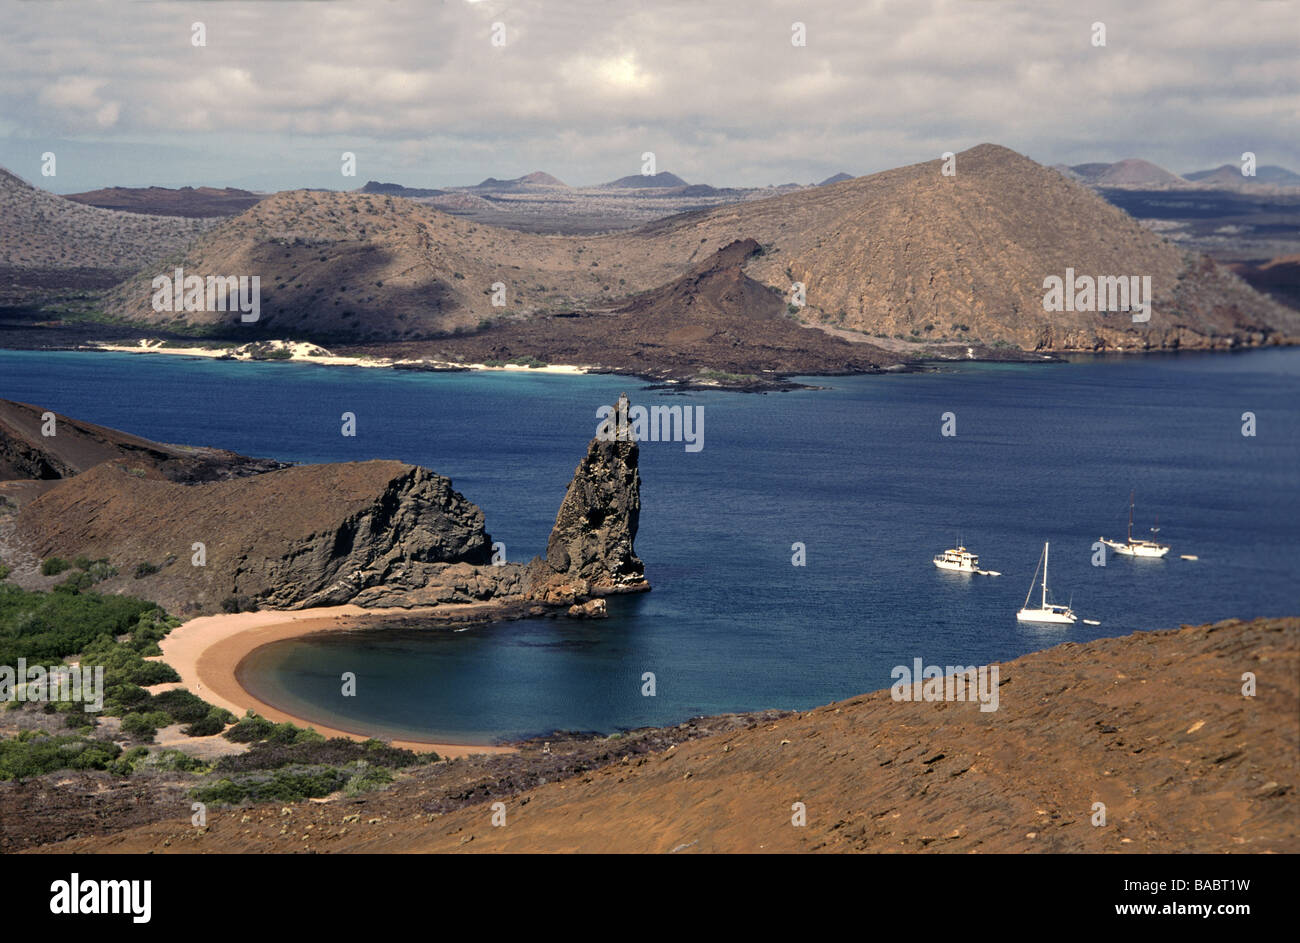 Galapagos Islands. Bartholomew Island.View from top of the island past Pinnacle Rock towards James Island. - Stock Image